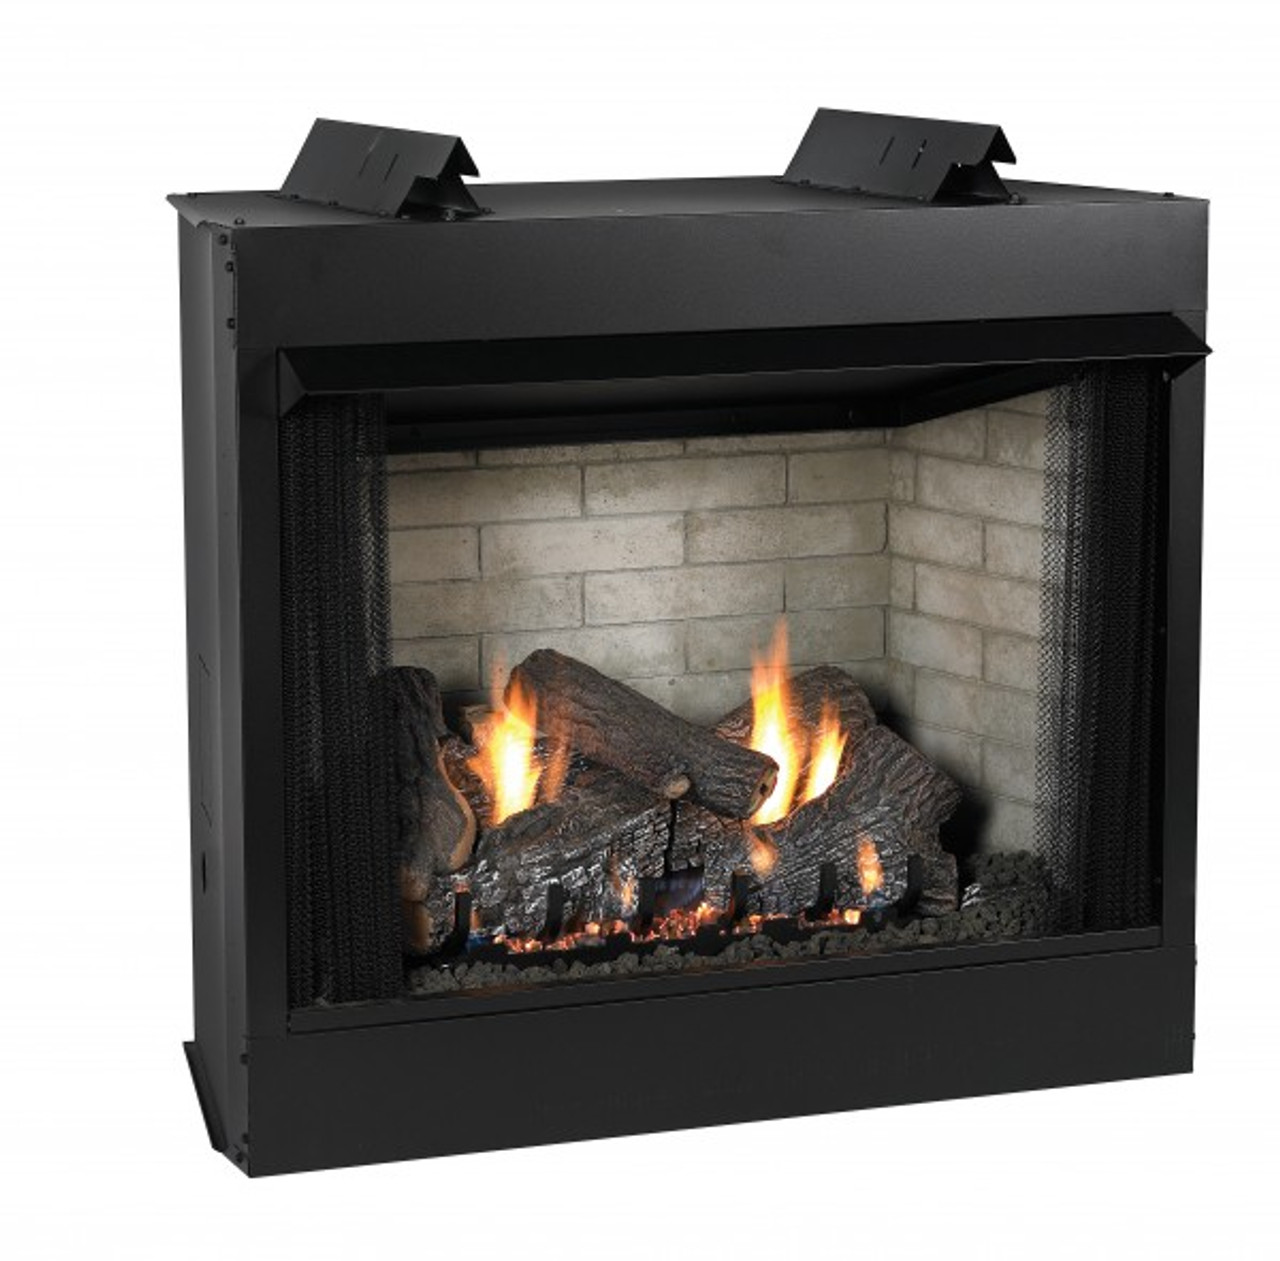 Empire Breckenridge  Vent-Free Firebox Deluxe 36 (includes Black Hood) with Refractory Liner - VFD36FB2M